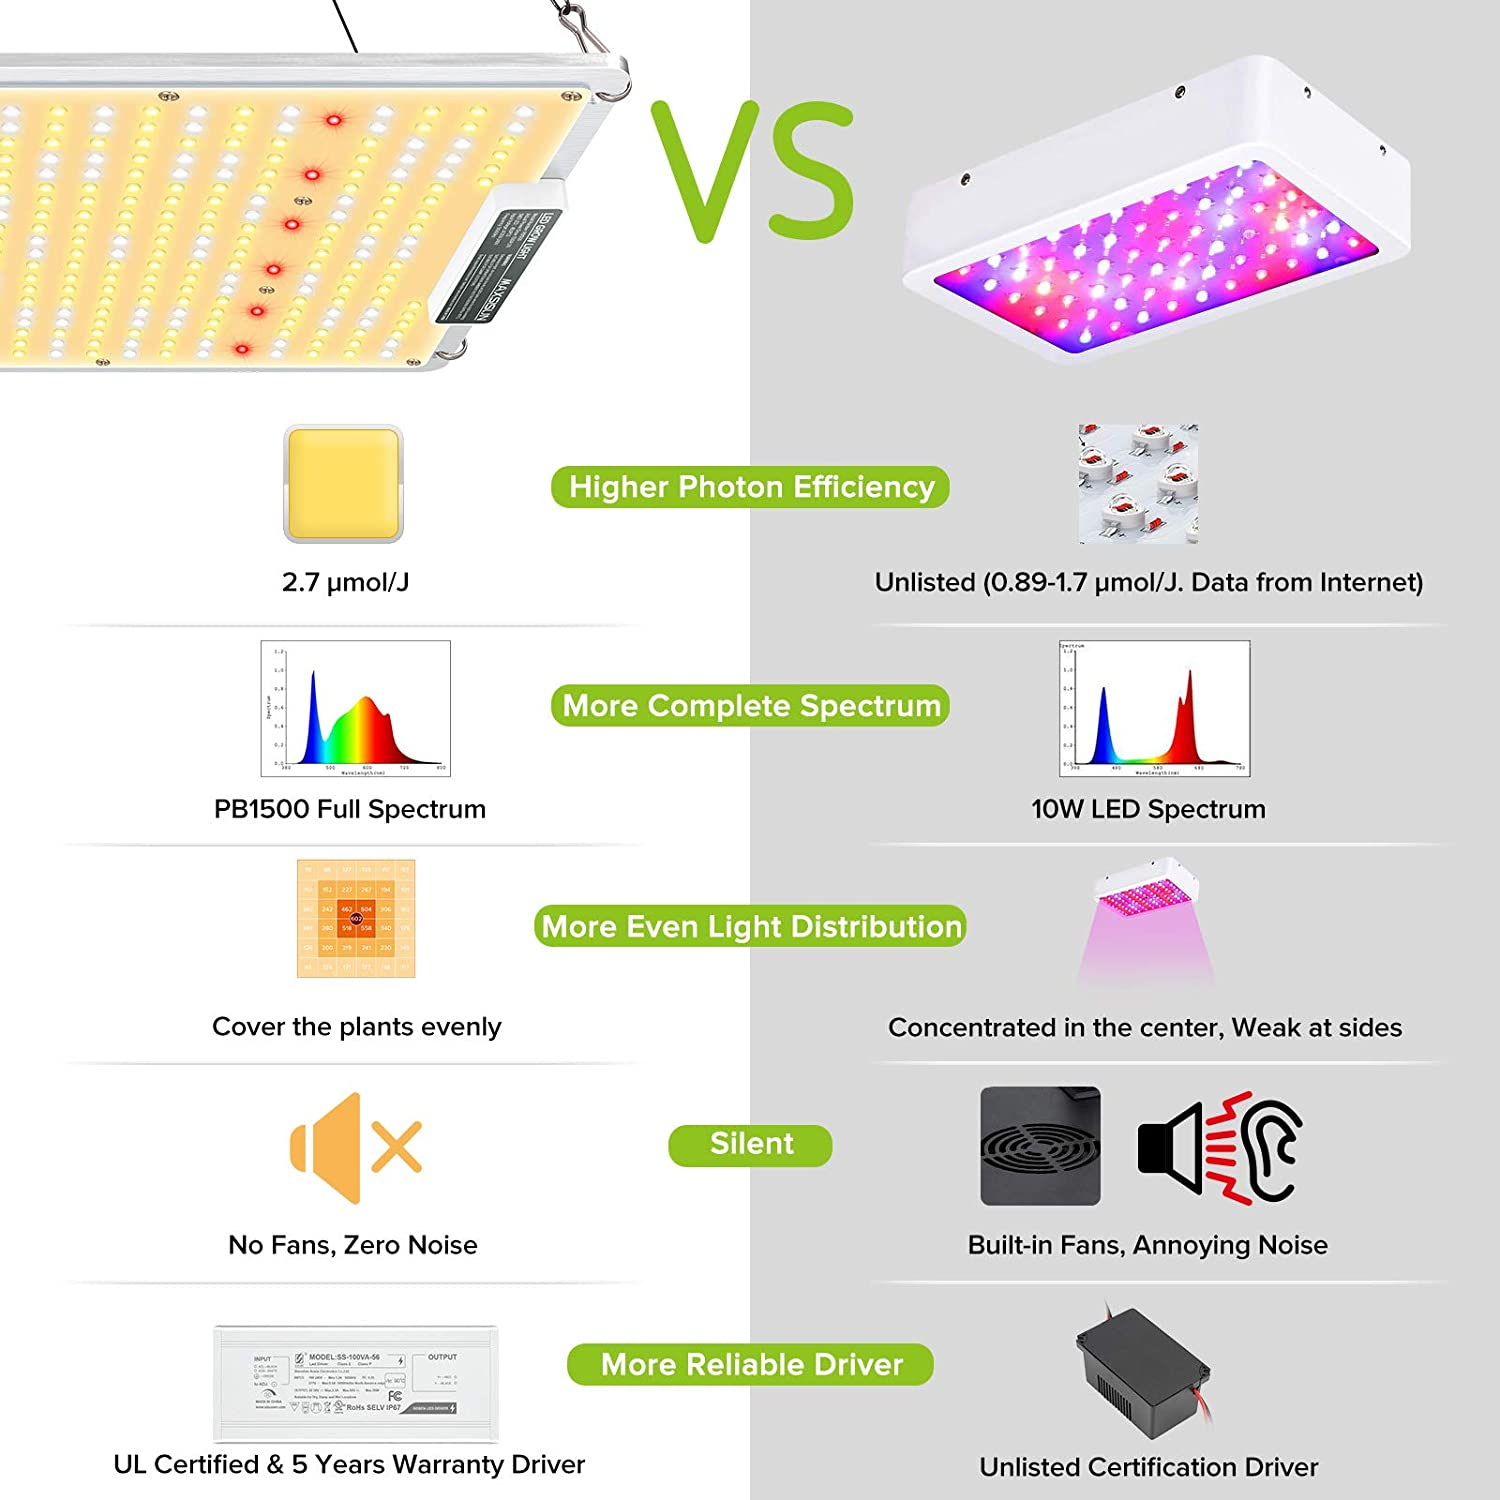 High PPFD Rating Sunlike Full Spectrum LED Grow Lights for Indoor Plants Veg and Bloom MAXSISUN 2020 Latest QB Style PB 1000 LED Grow Light Plant Growing Lamps to Cover a 2x2 ft Flowering Space